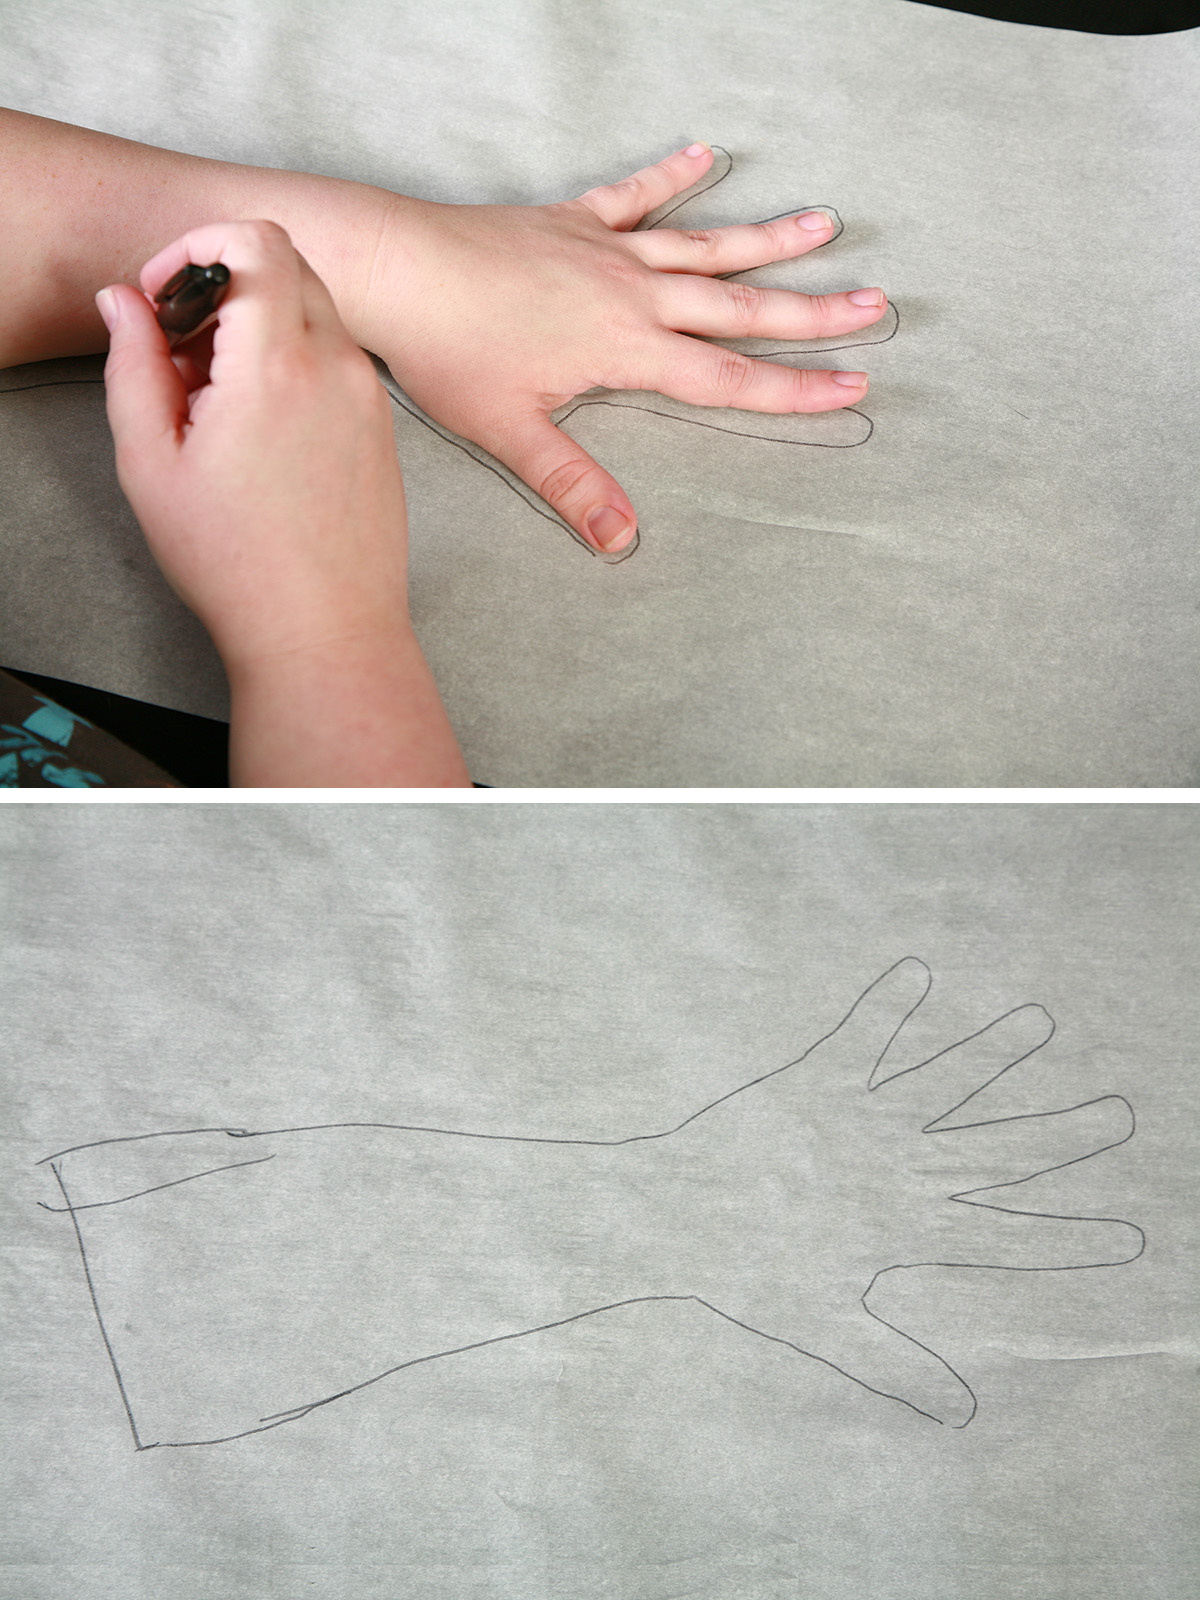 A two photo compilation image showing a hand being traced, and the tracing of the hand.